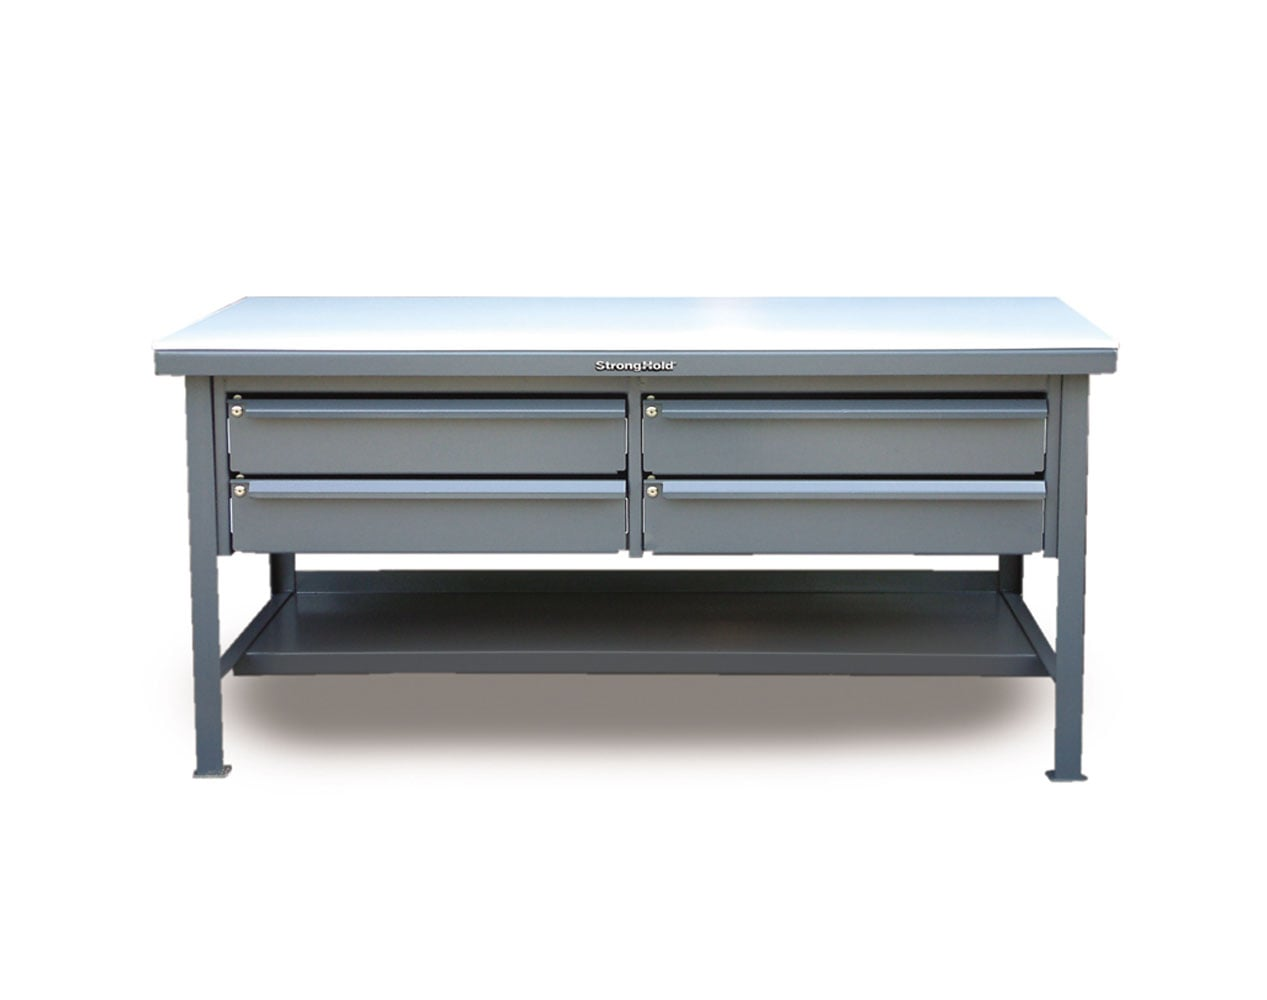 Extra Heavy Duty 7 GA Shop Table with UHMW Top, 4 Keylock Drawers, 1 Shelf – 72 In. W x 36 In. D x 34 In. H